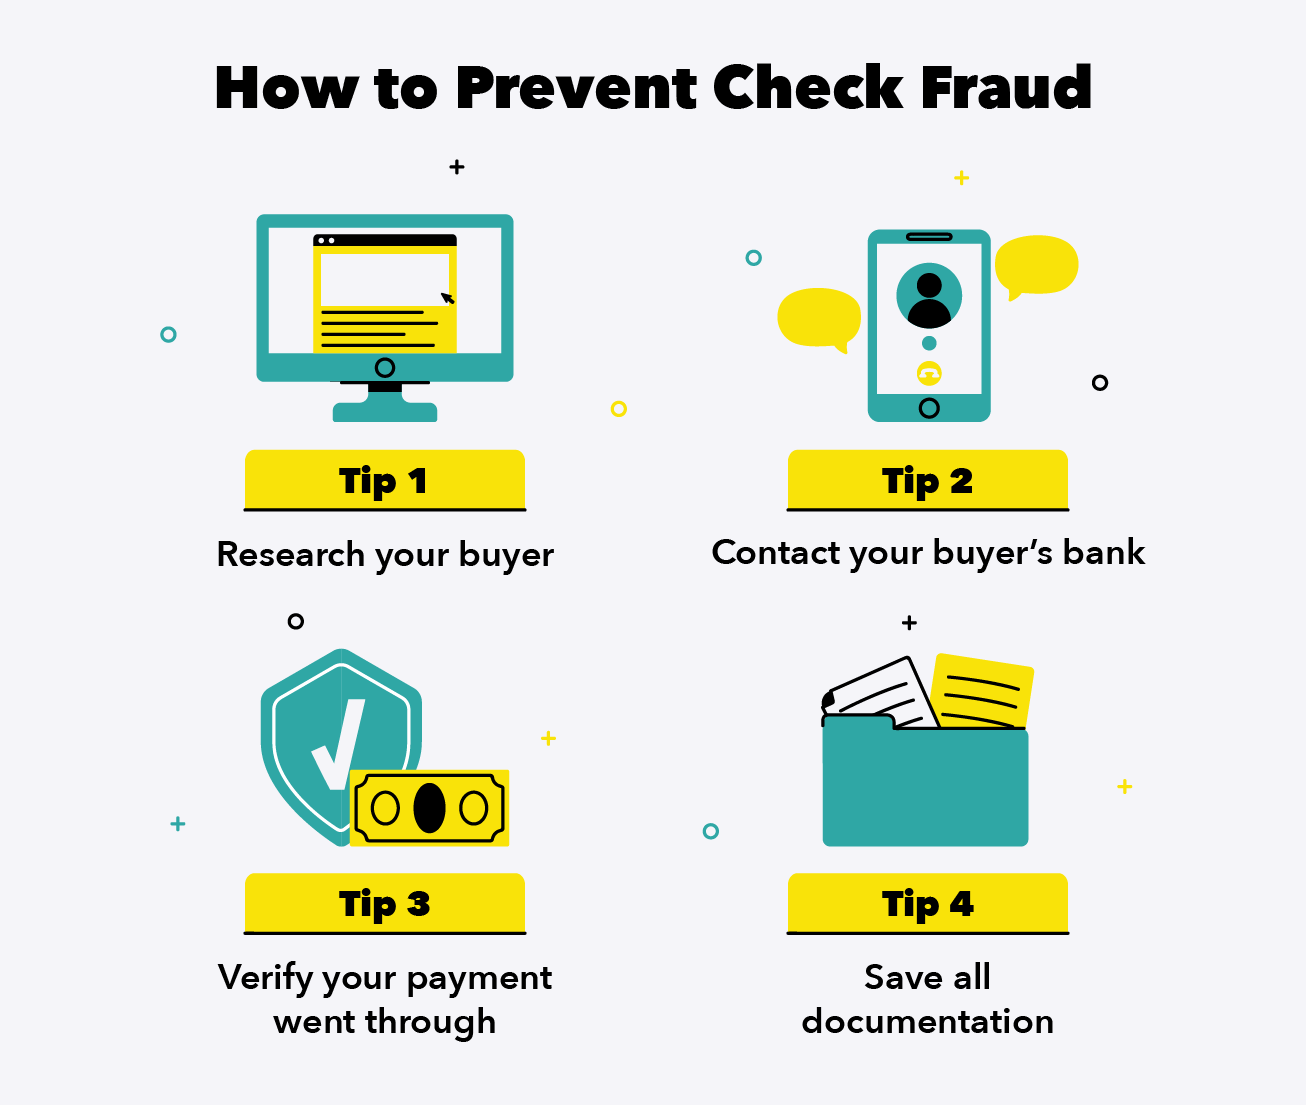 Illustrations depict the 4 ways to prevent check fraud.